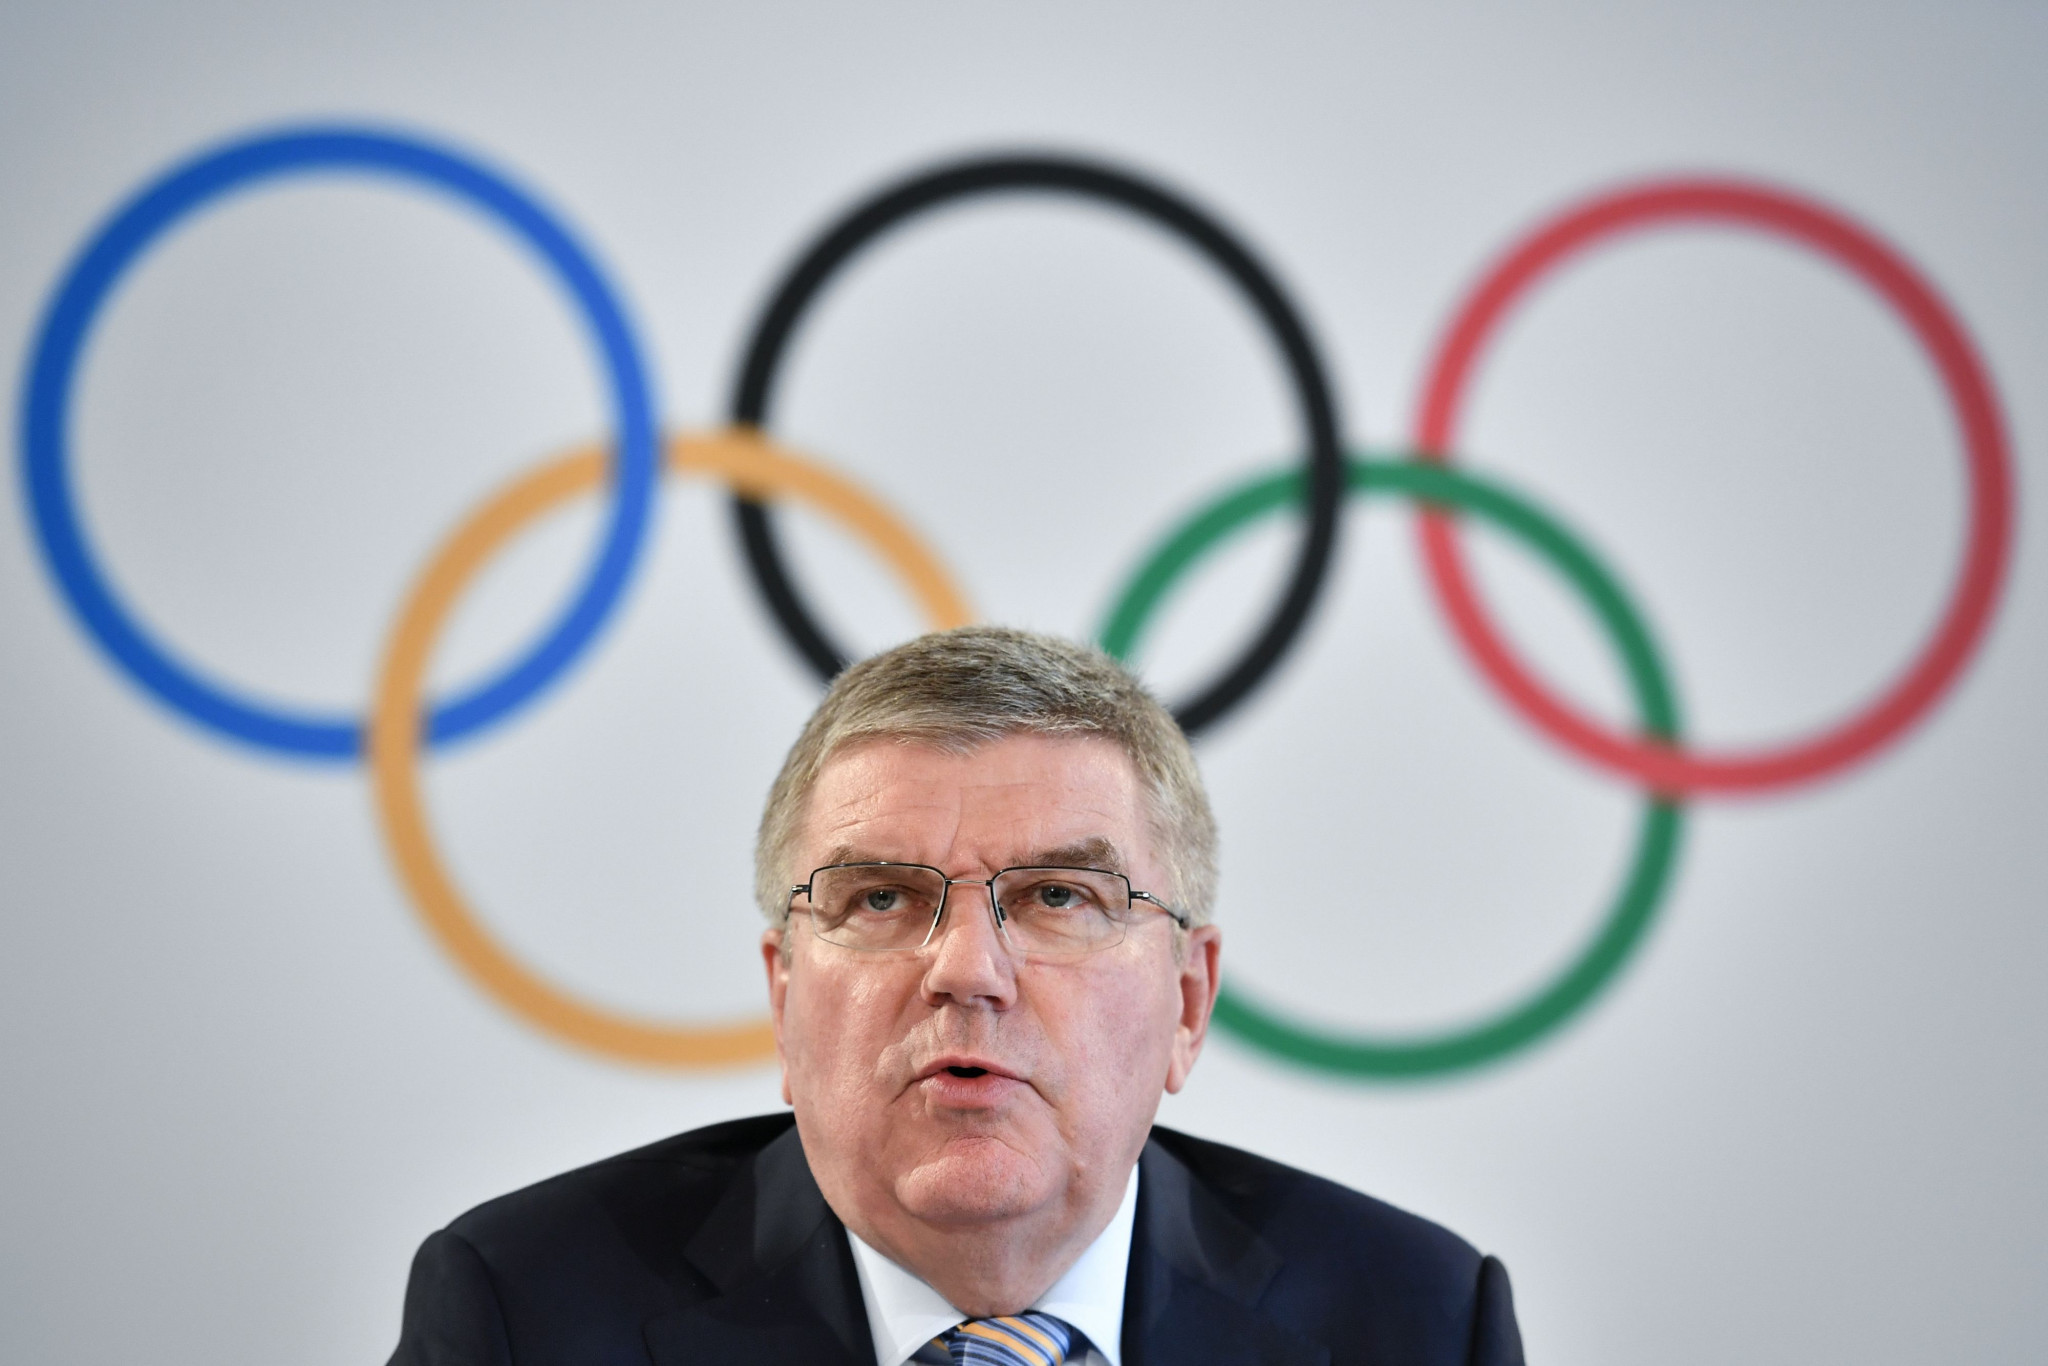 IOC President Thomas Bach has previously said boxing's place on the Olympic programme